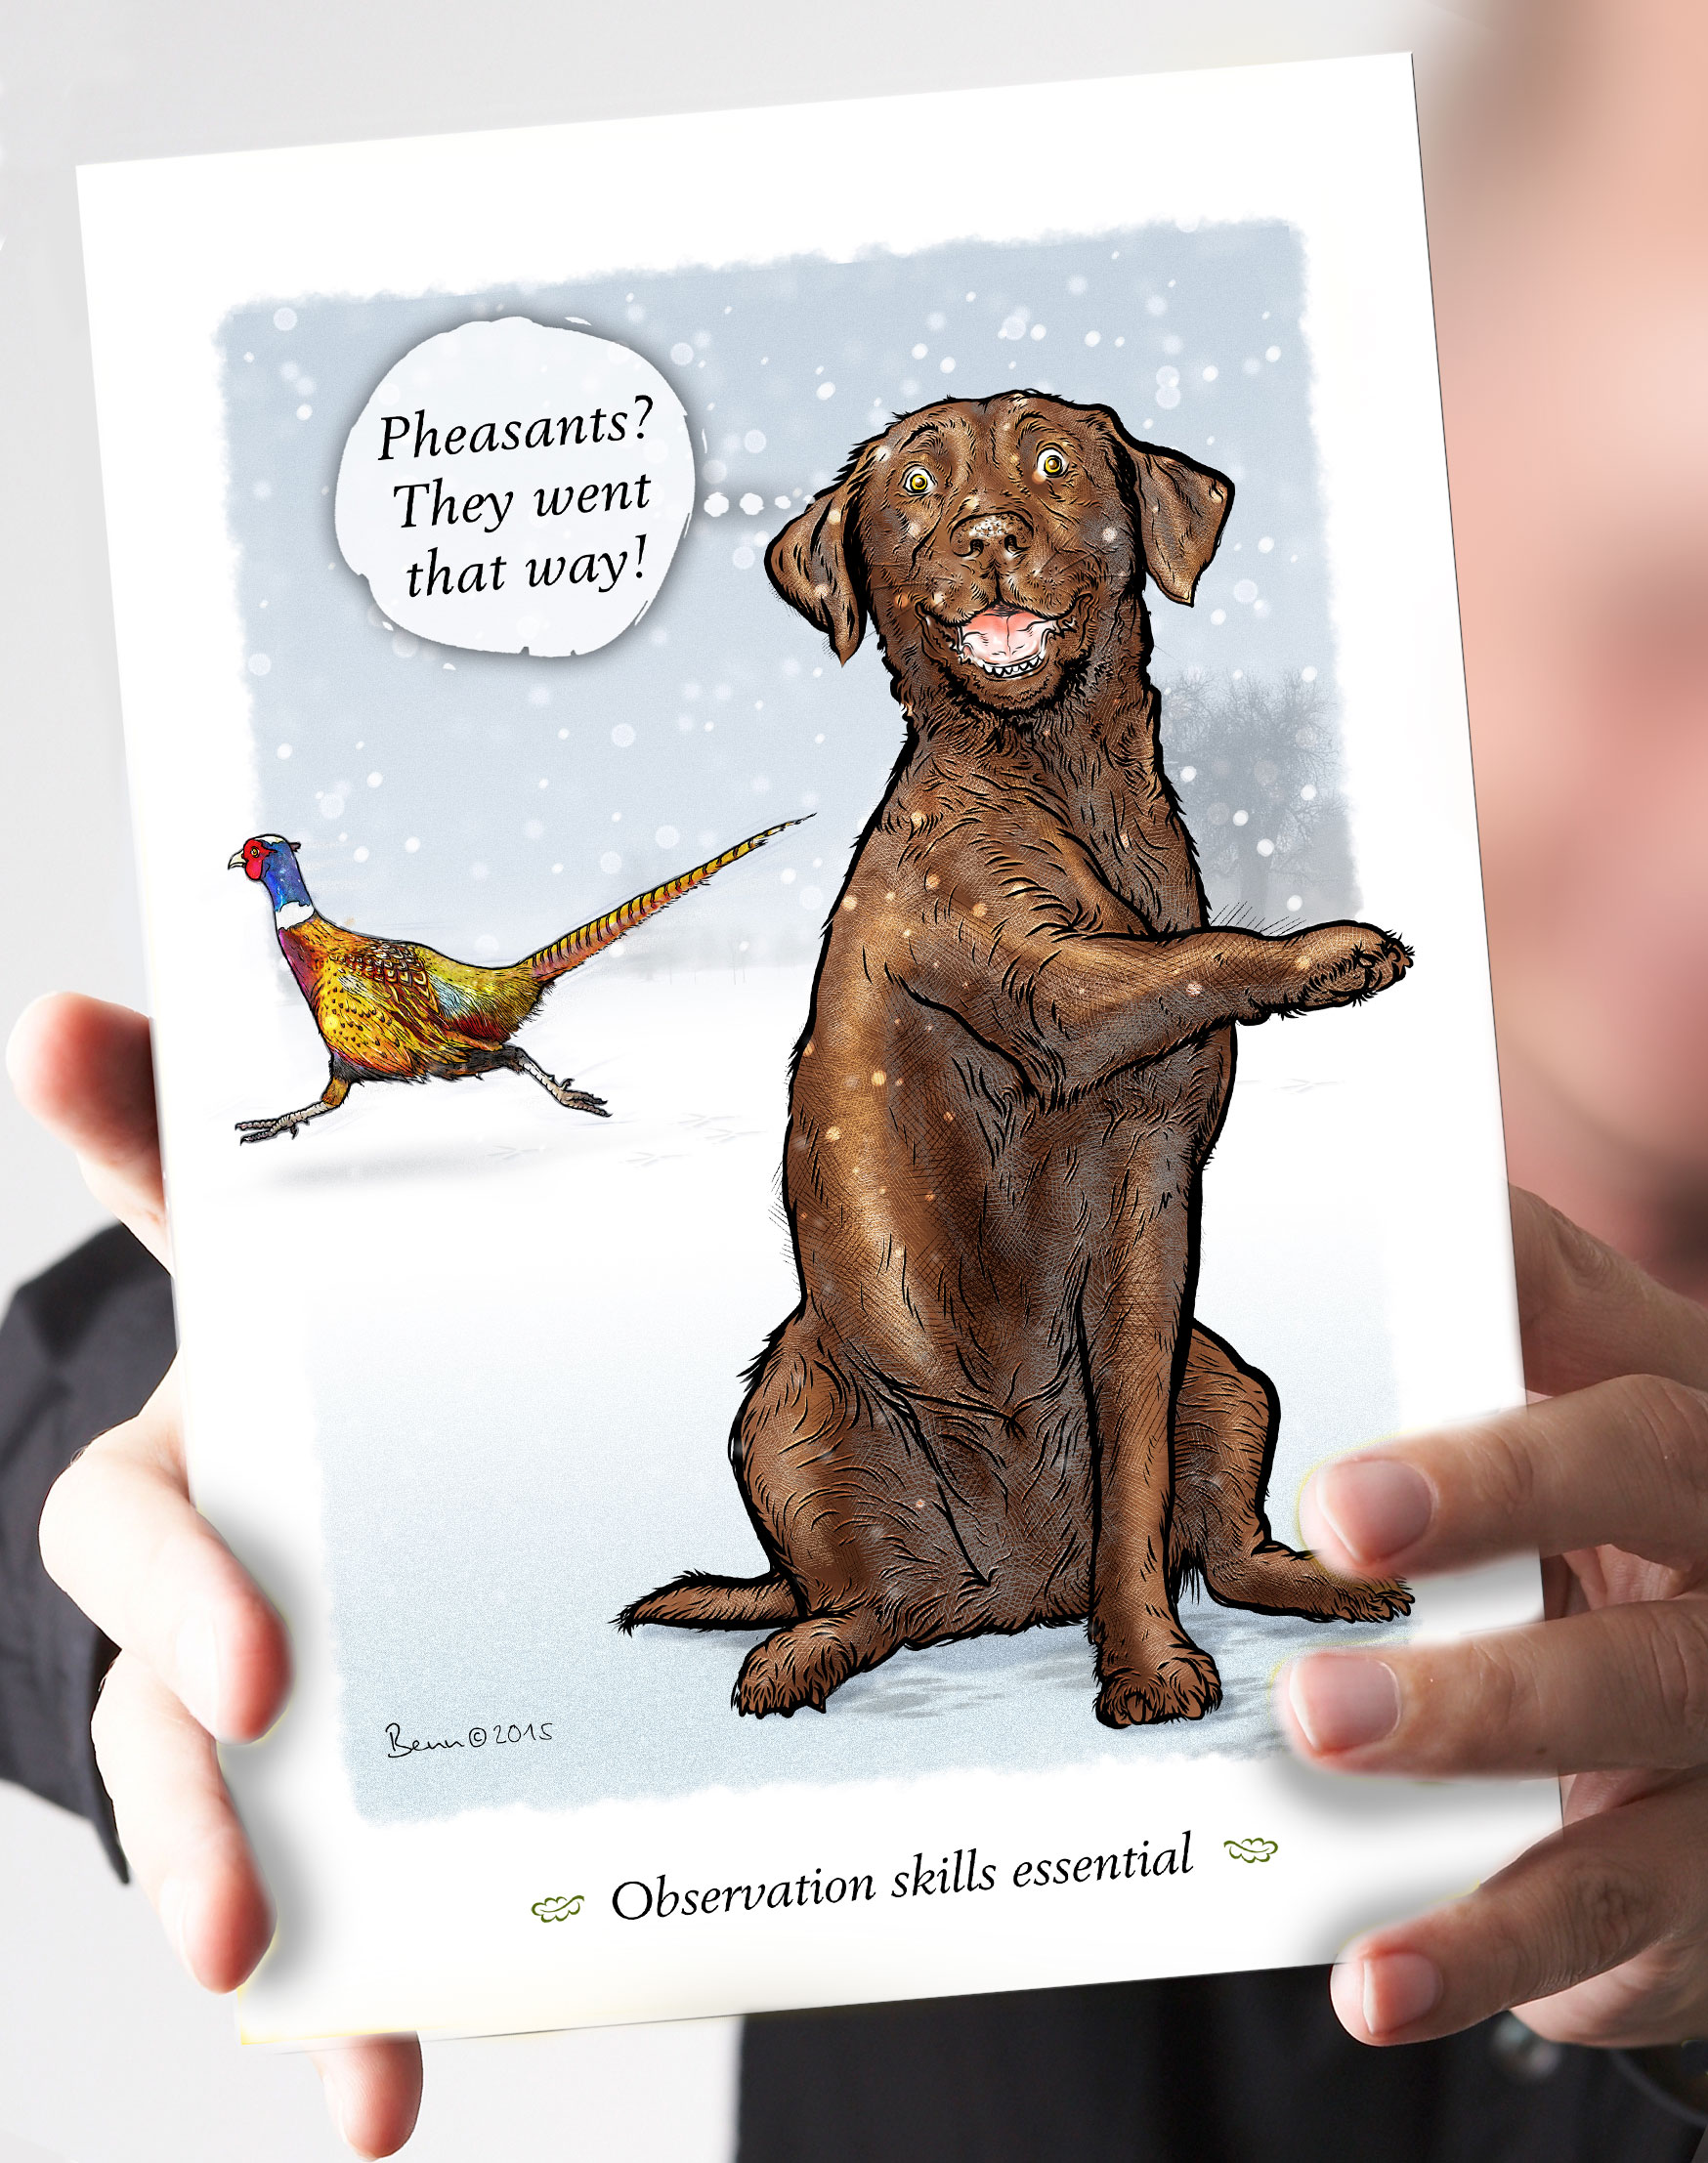 78-Lab-chocolate-pheasants-that-way-hold